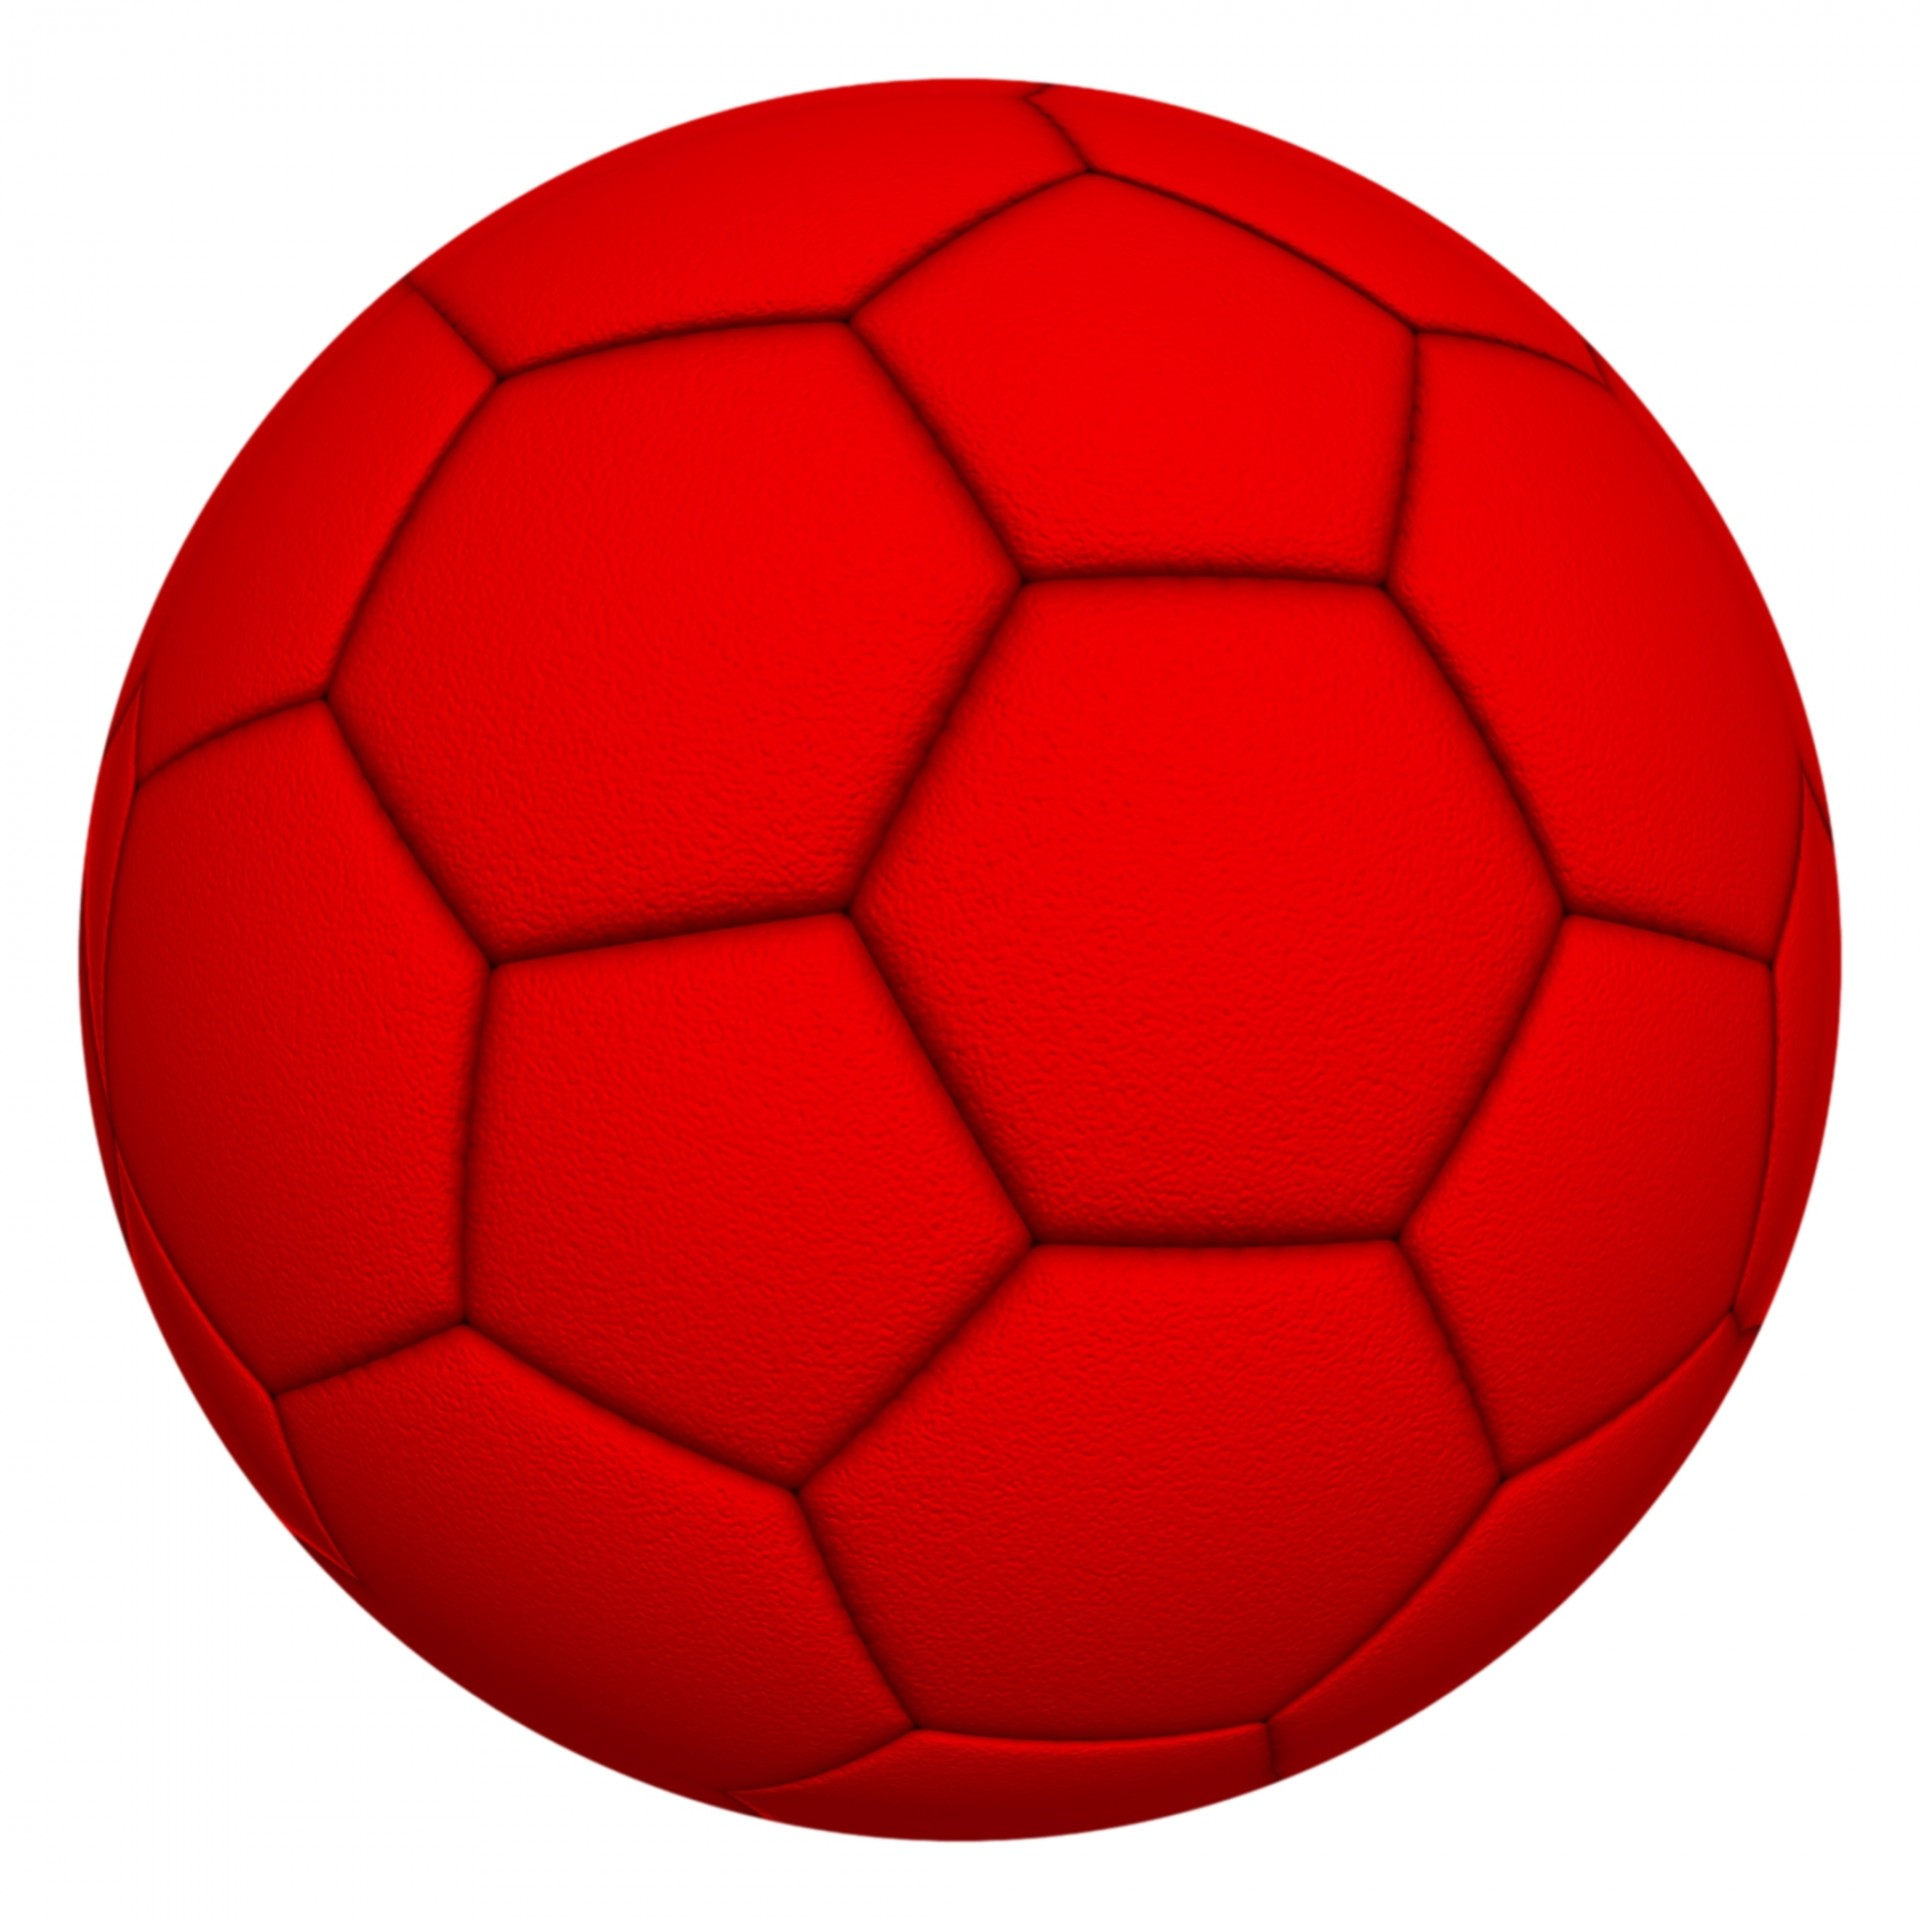 1920x1920 Red Soccer Ball Free Stock Photo